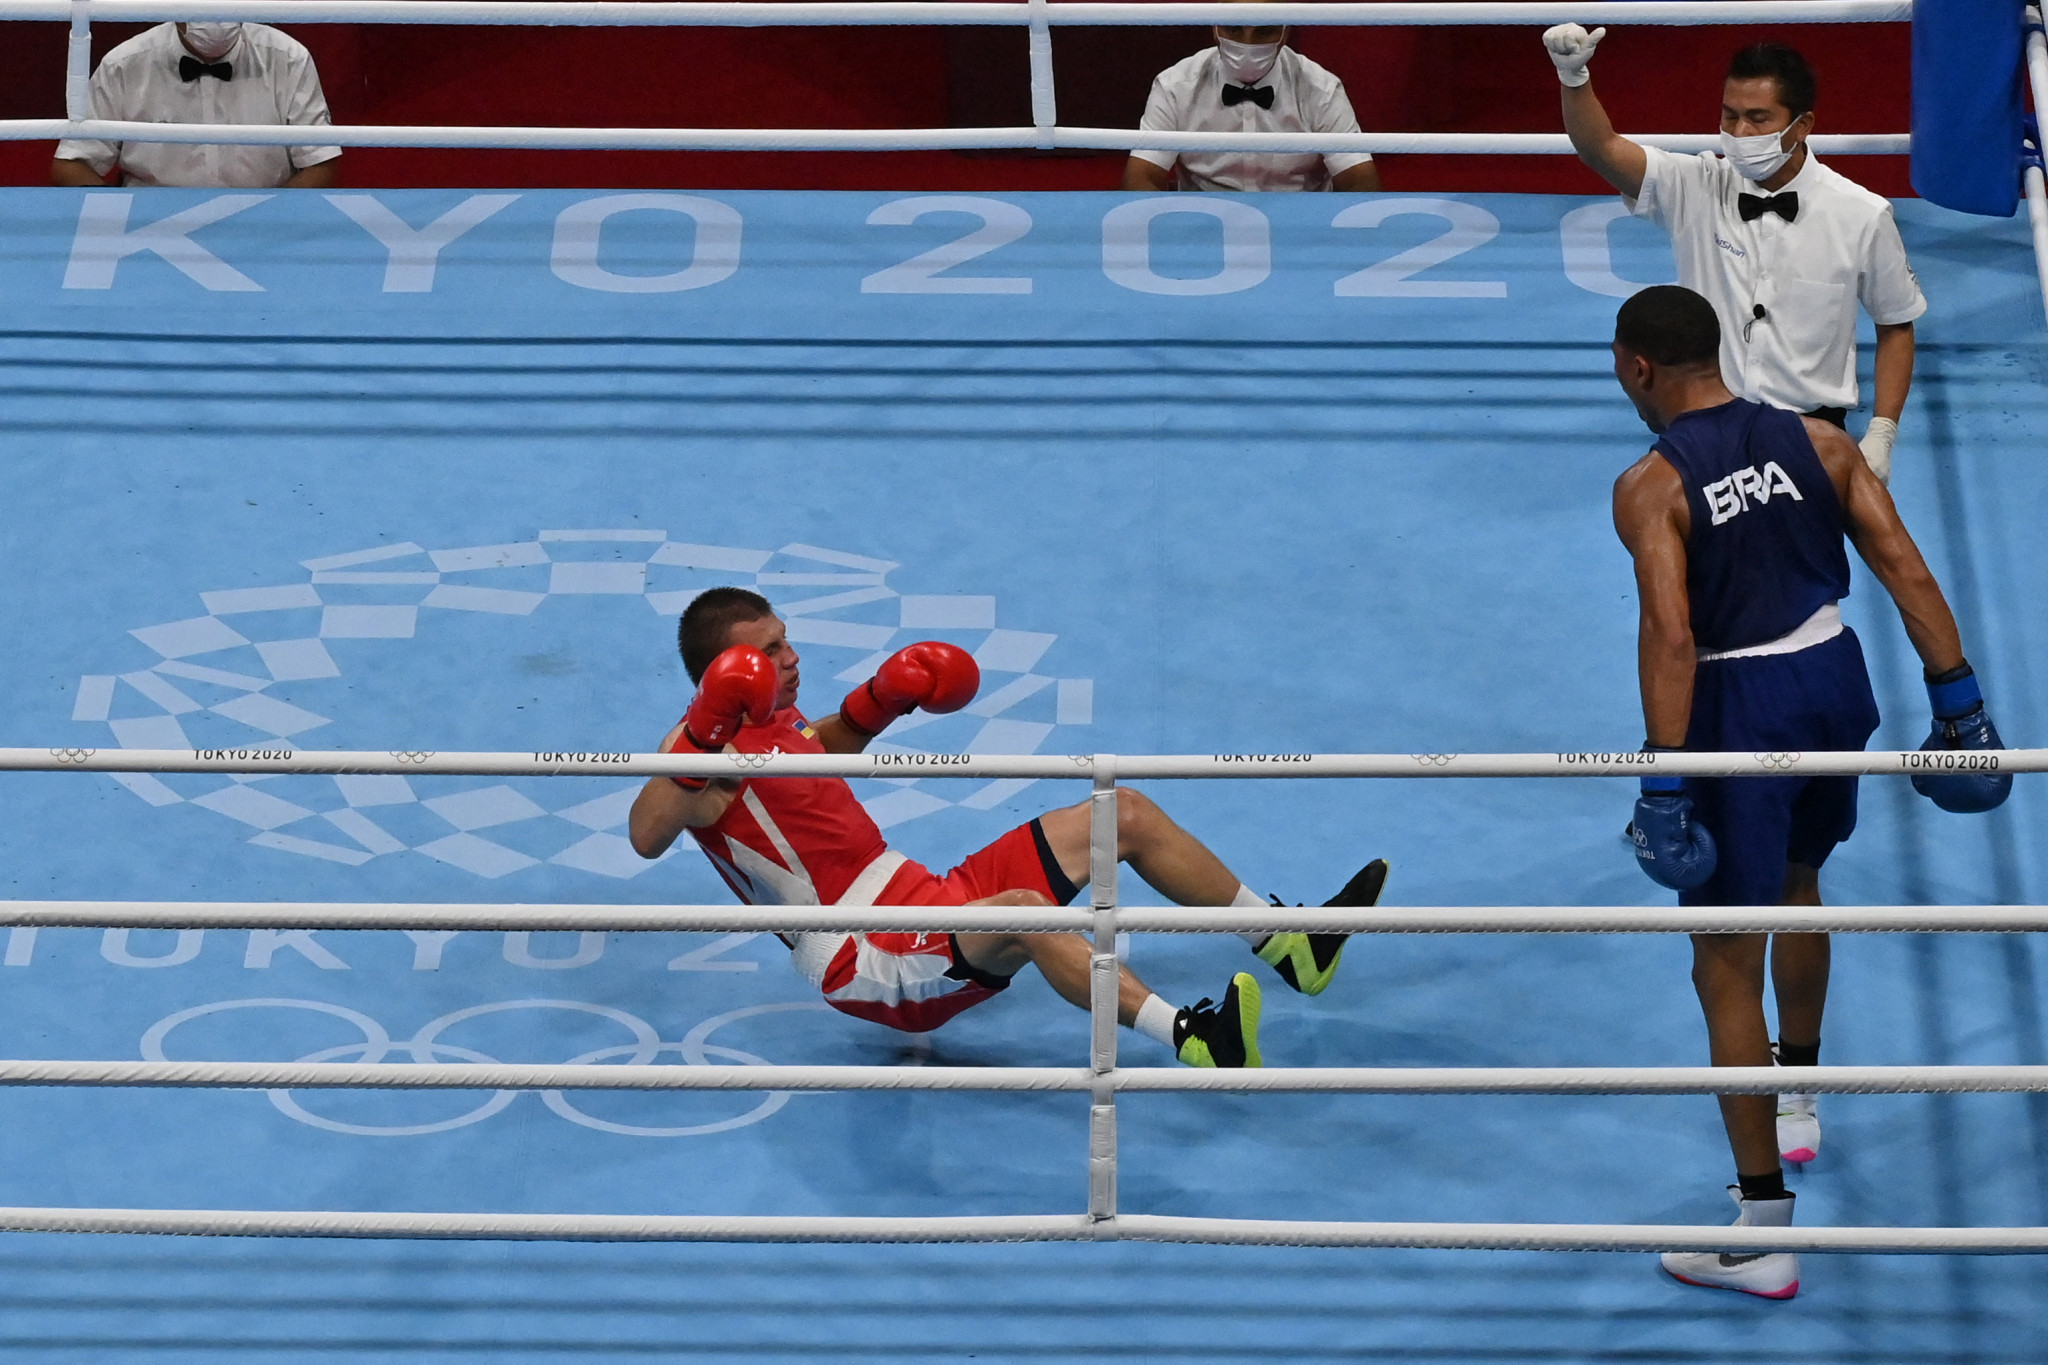 Sousa strikes knock-out blow to win men's middleweight boxing gold at Tokyo 2020